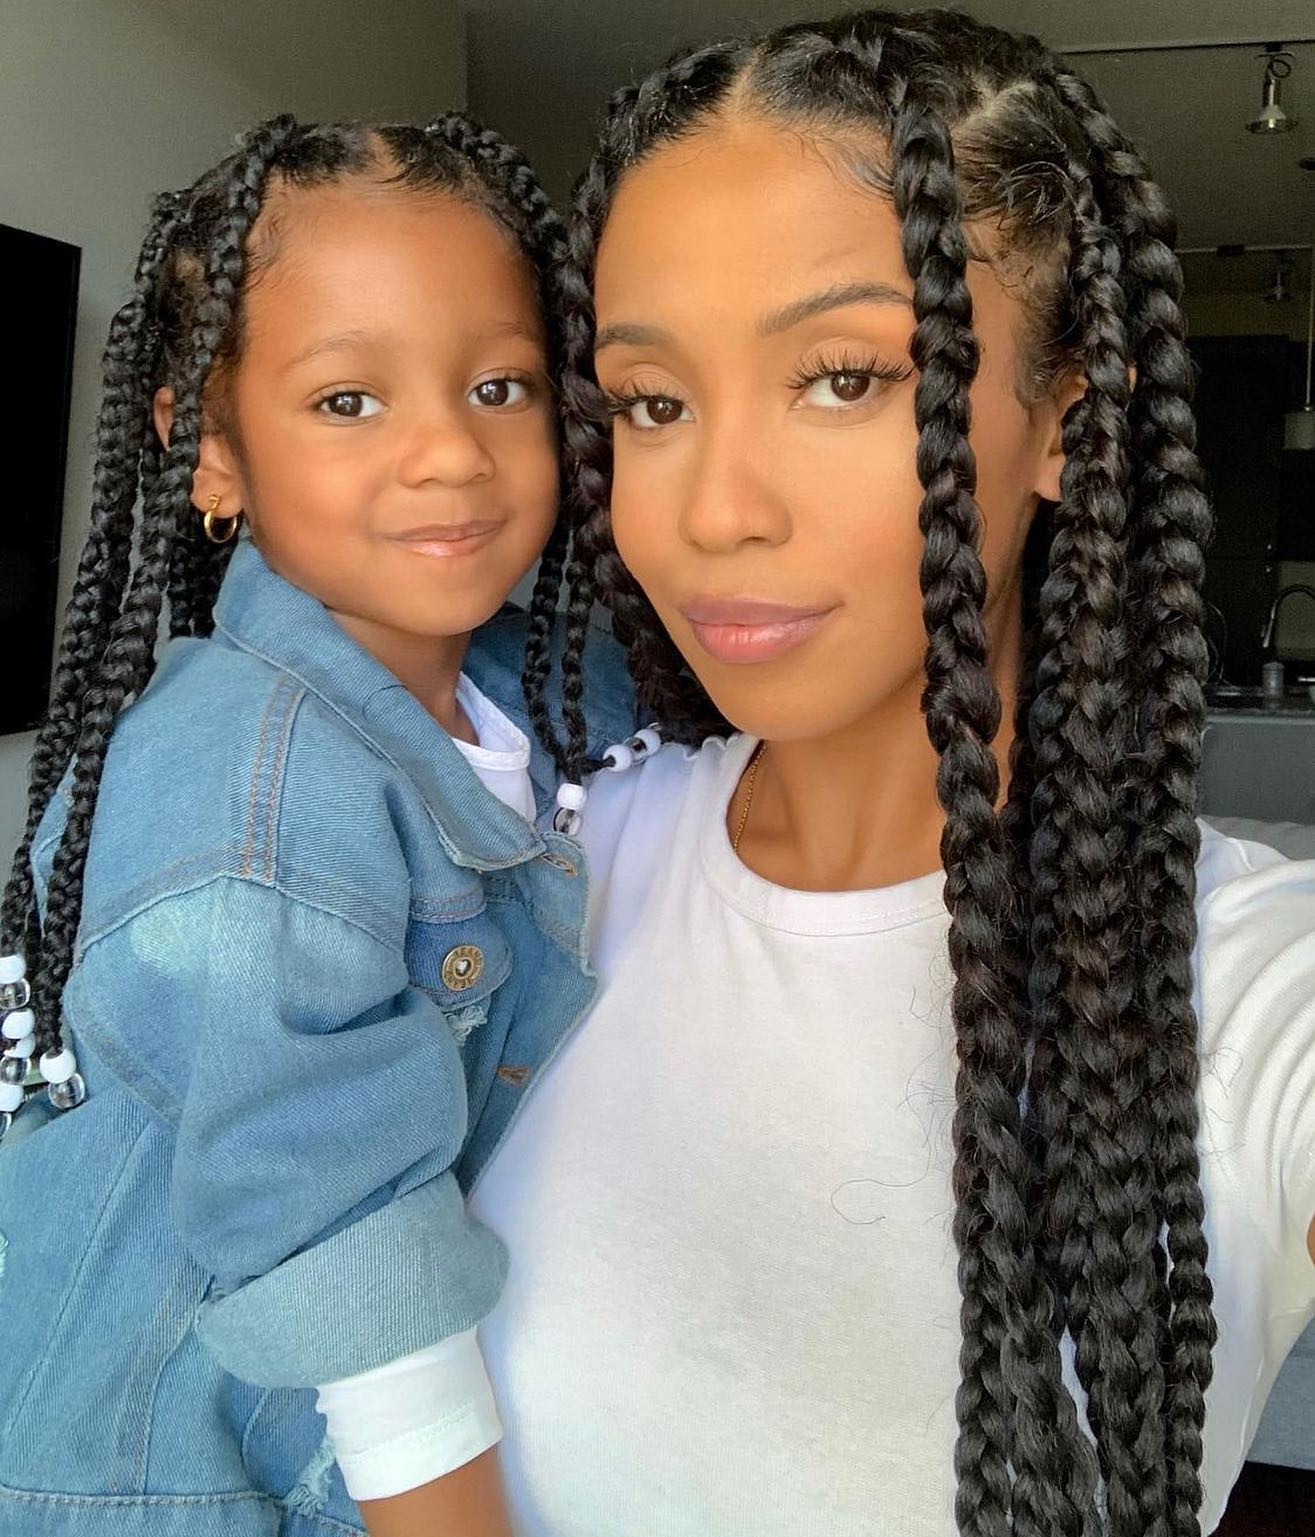 It's that time of year to bring out the protective styles to keep your natural hair regimen as low maintenance as possible. What styles are you excited to try this season?